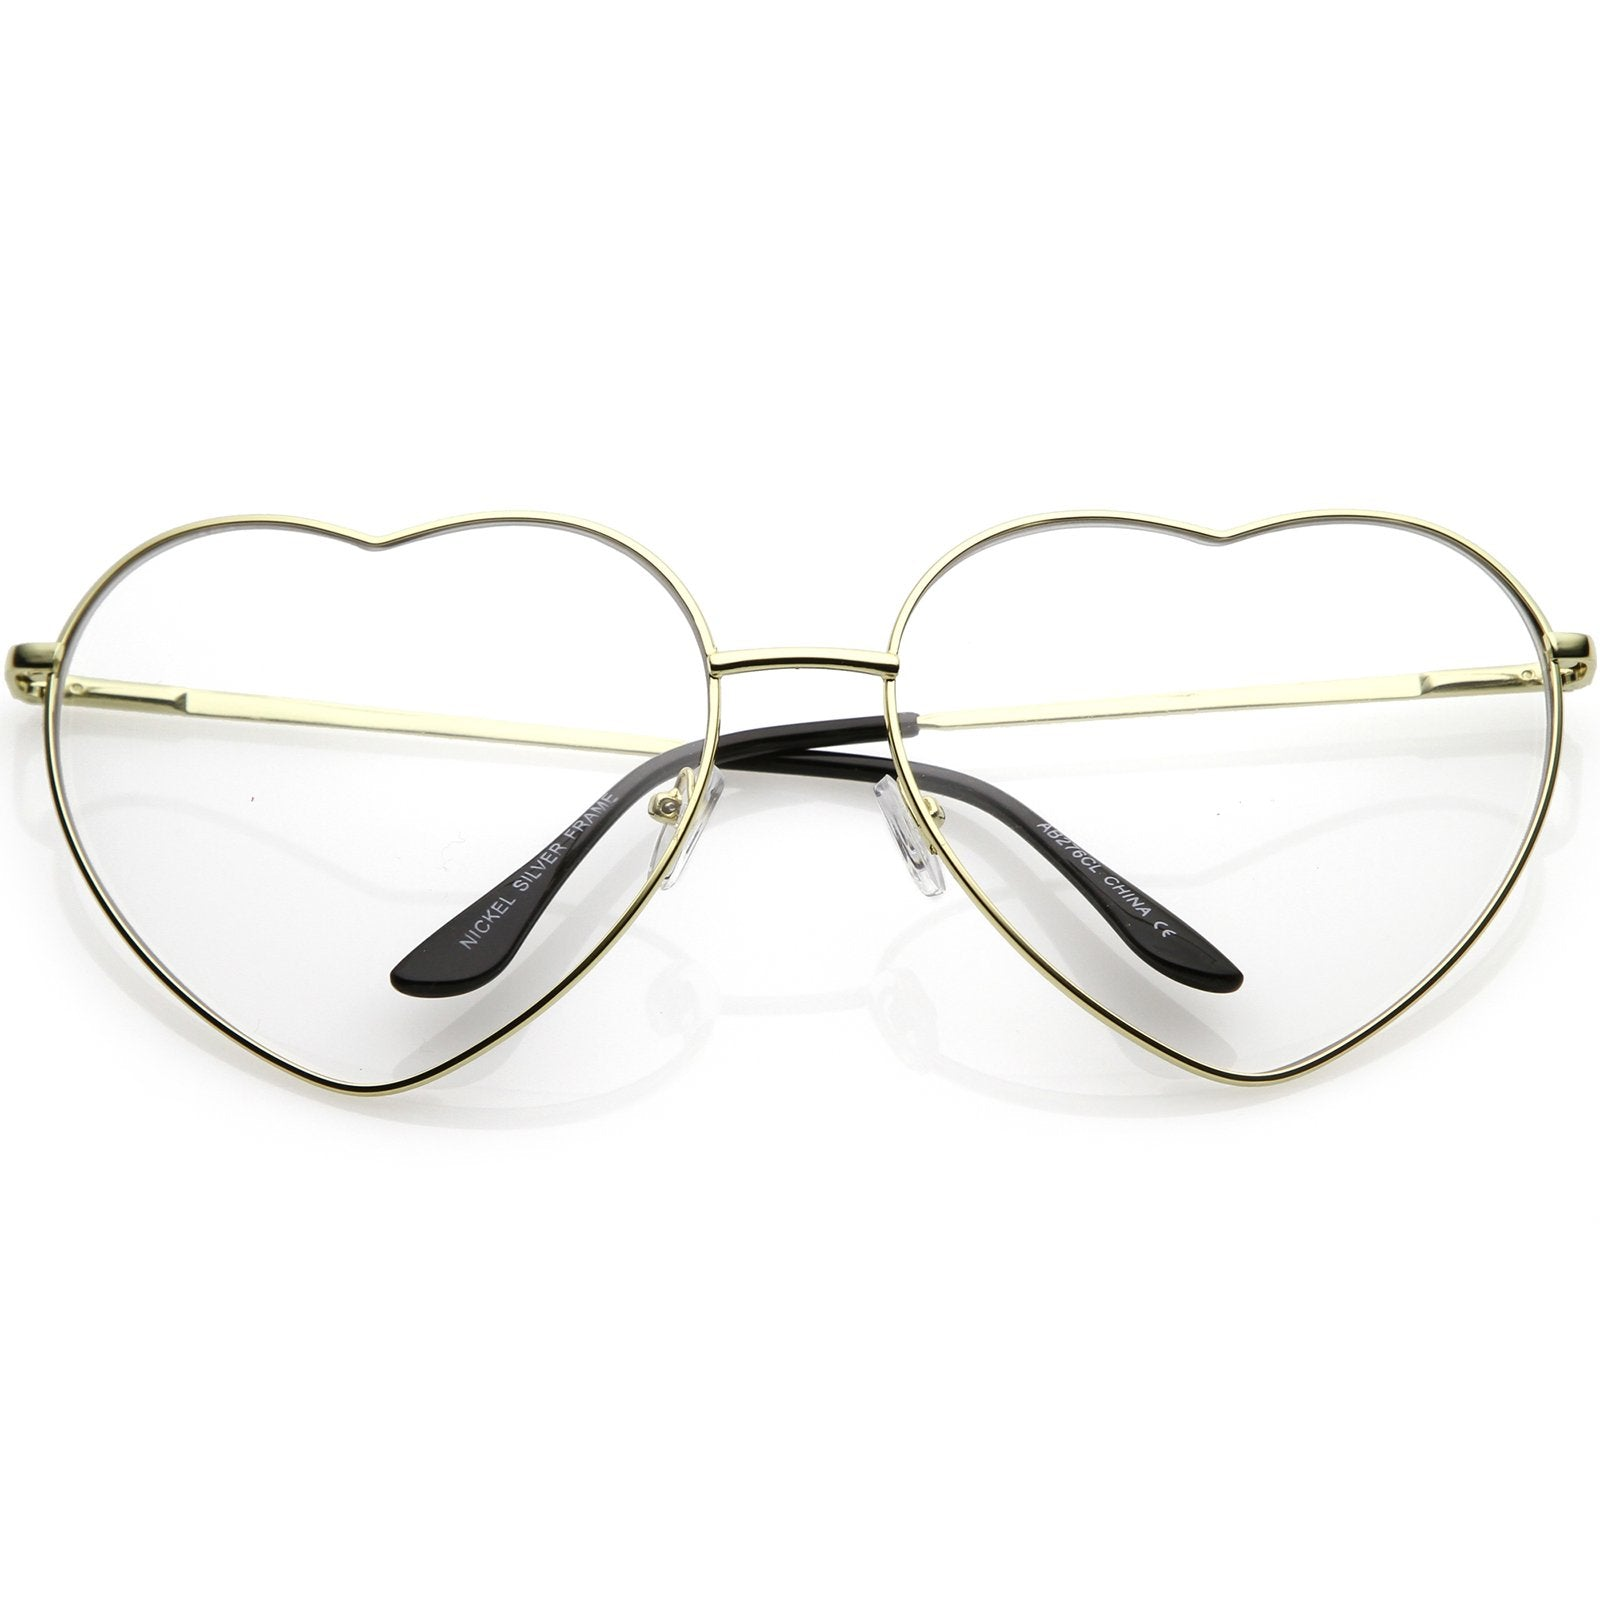 024ed80c097 Oversize Women s Festival Heart Shape Clear Lens Glasses C304